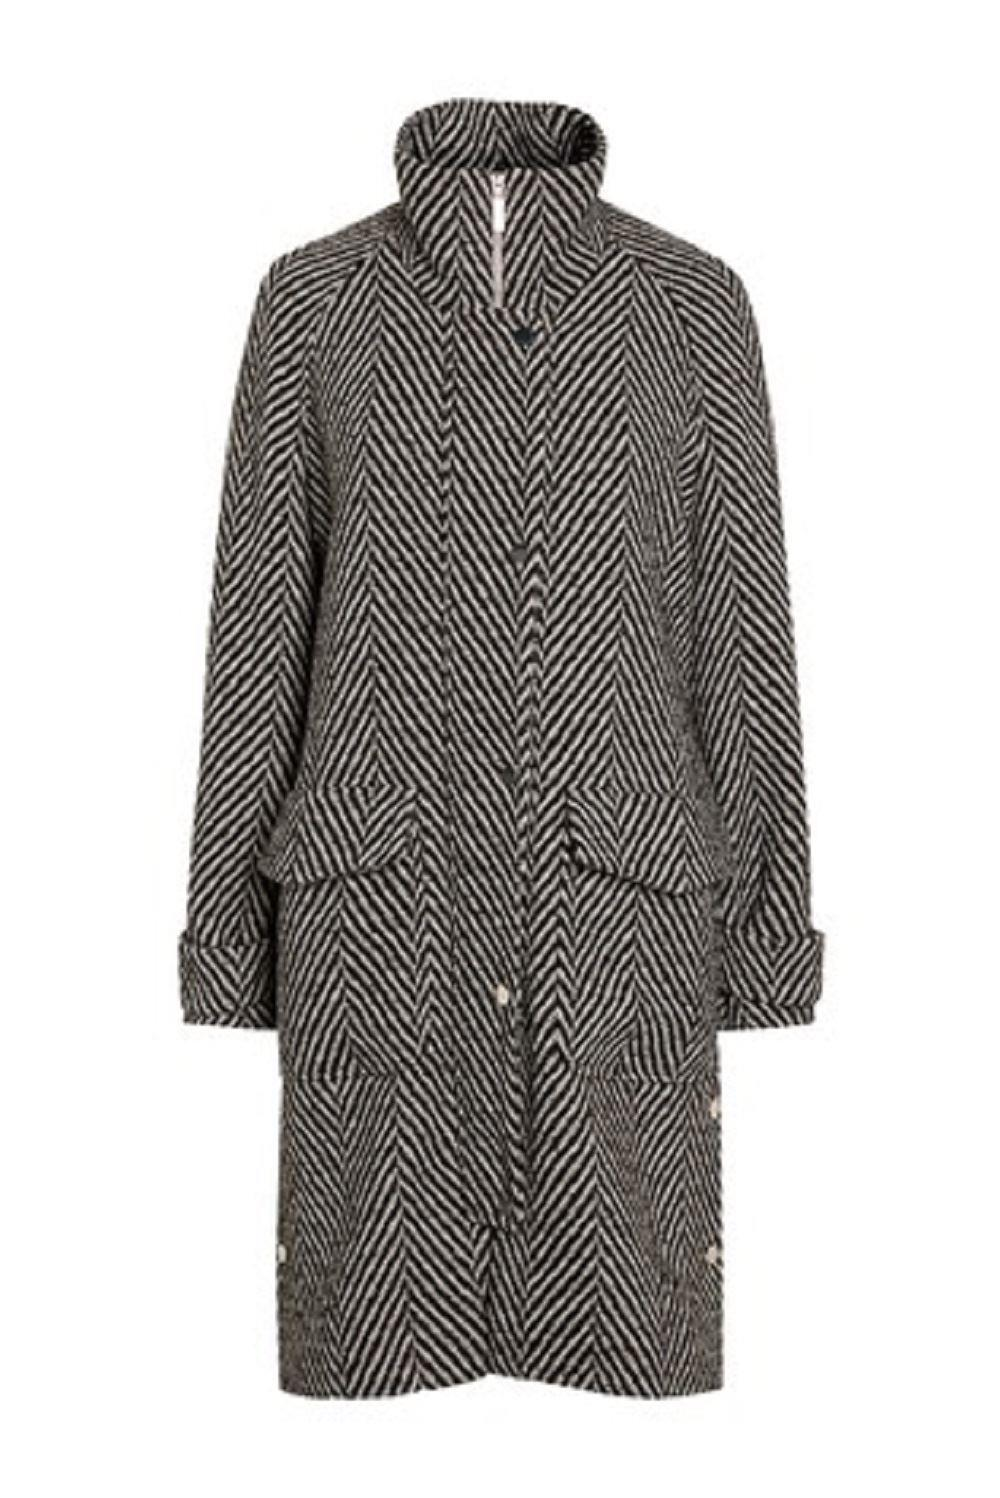 Ex Next - Women's Winter Herringbone Coat